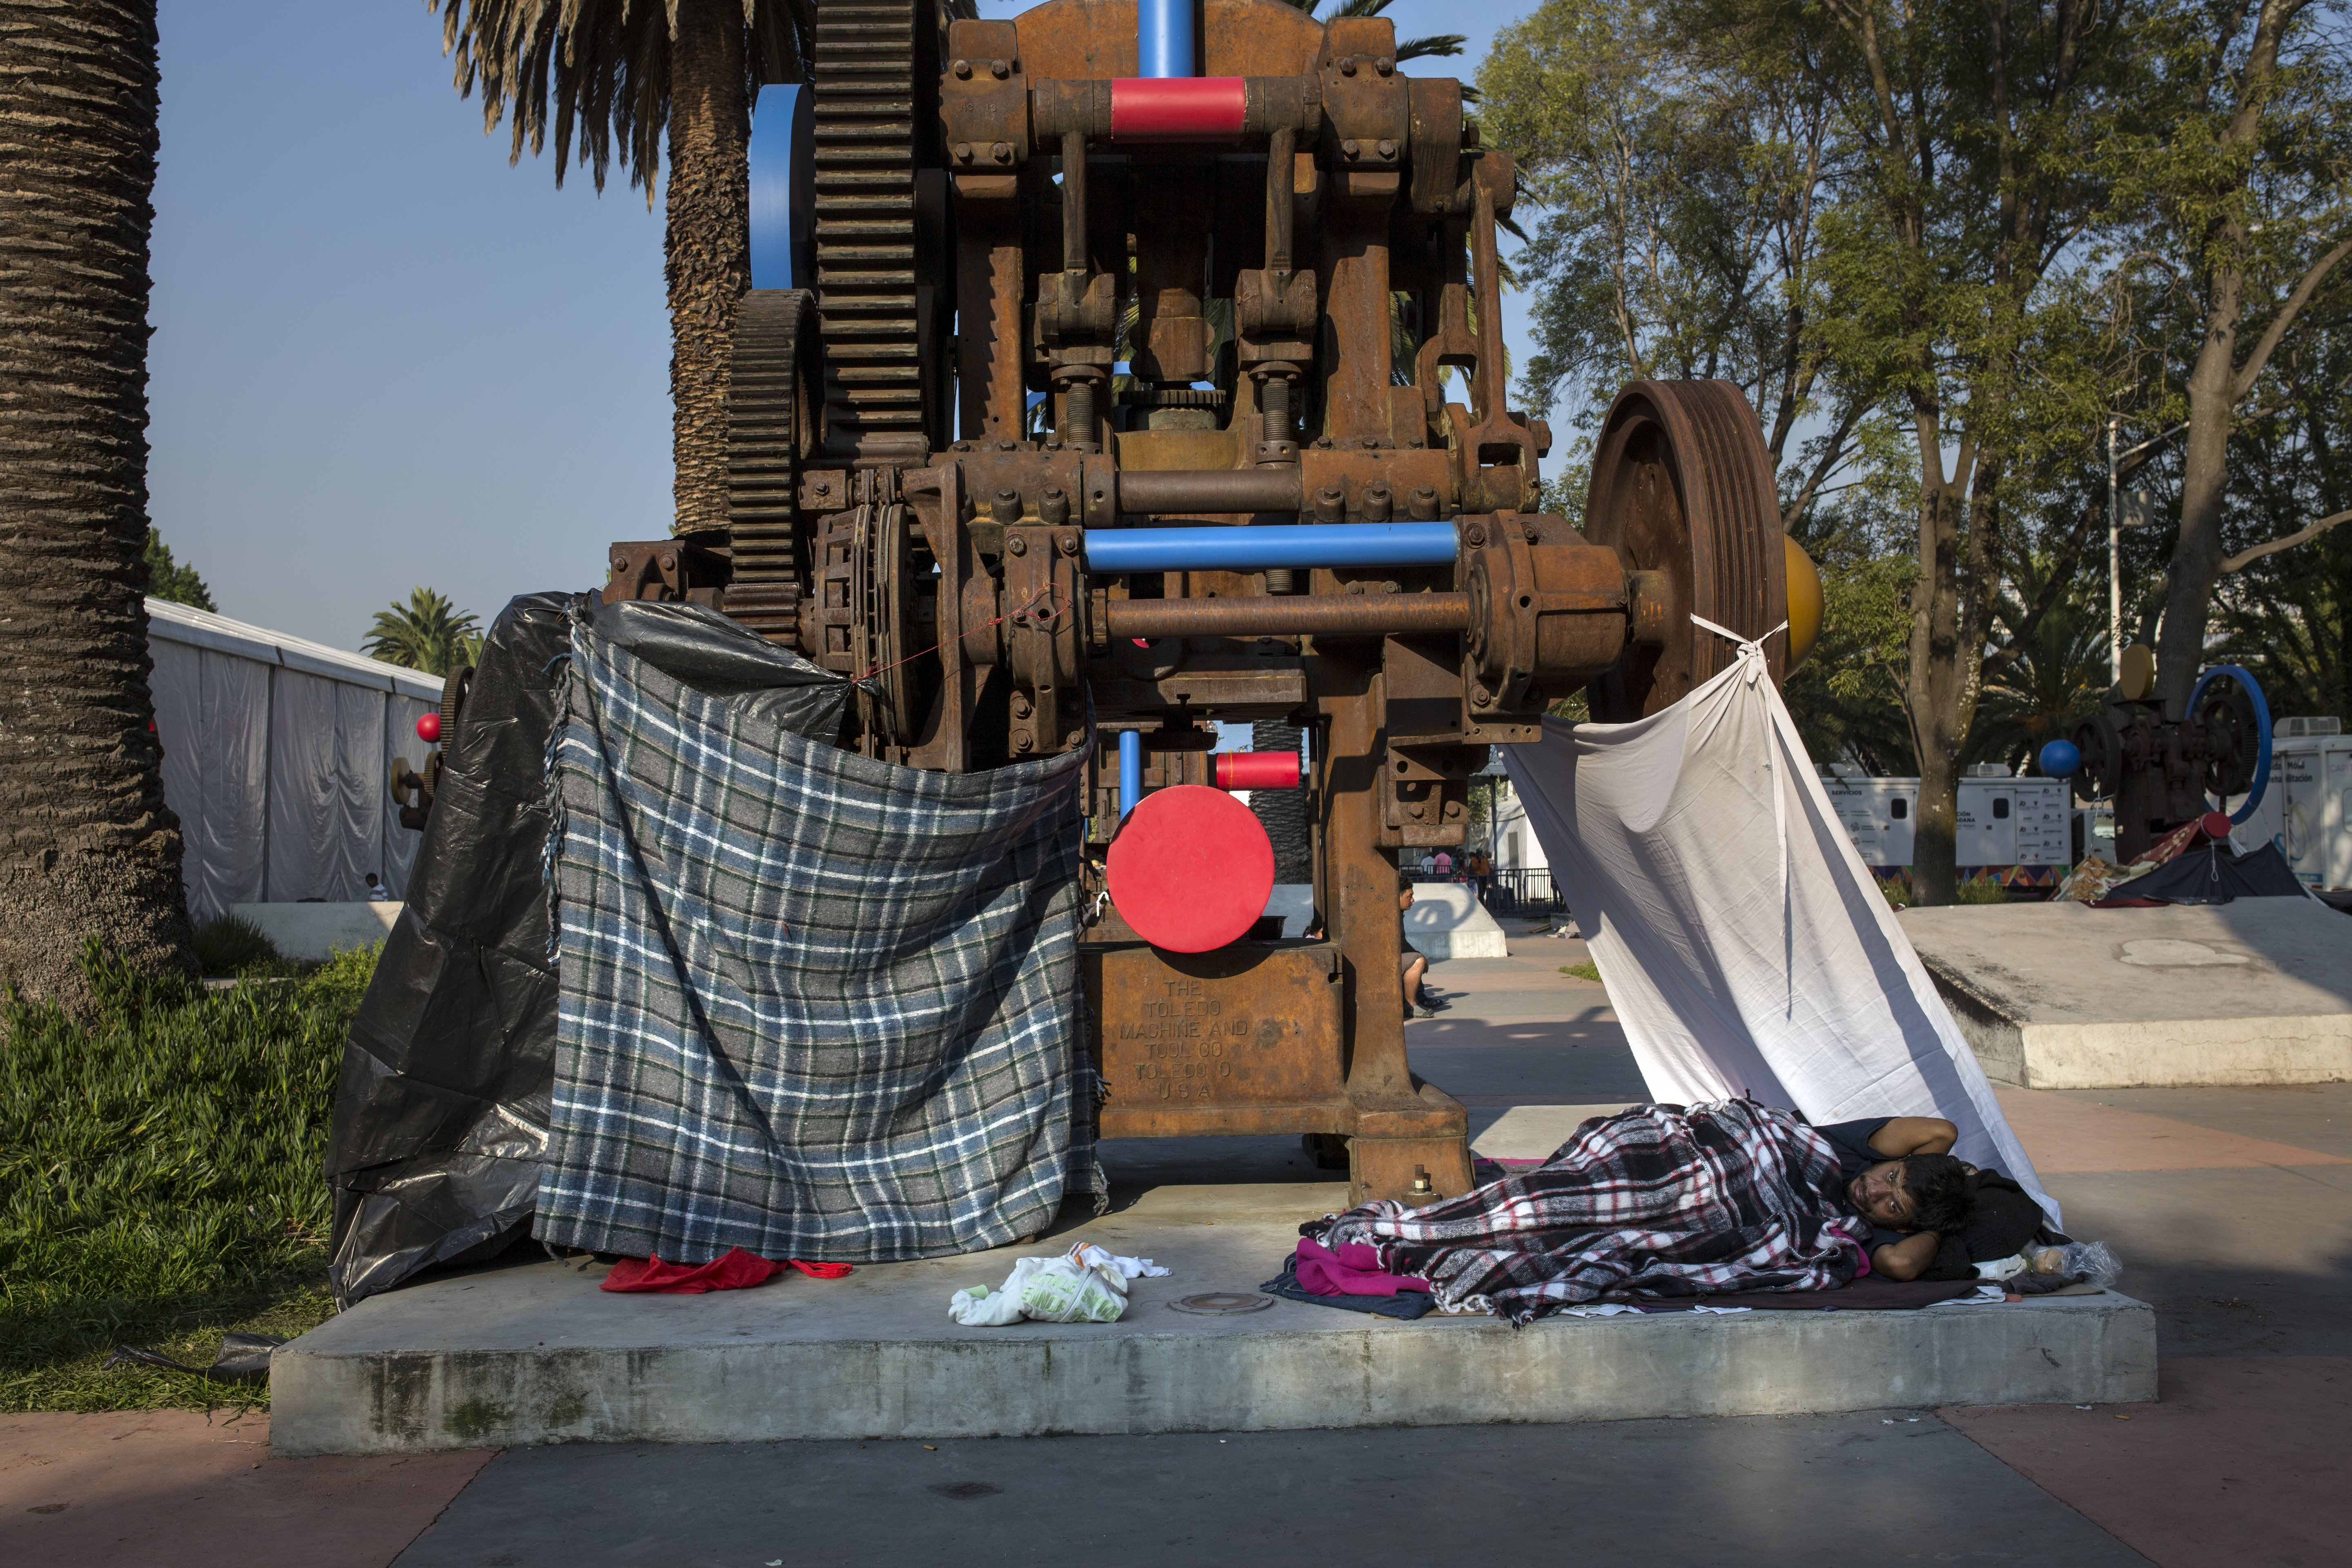 Juan Antonio Ortiz, 38, from Guatemala, rests in a makeshift shelter at the Jesus Martinez stadium in Mexico City, Wednesday, Nov. 7, 2018. Central American migrants on Wednesday continued to straggle in for a rest stop at a Mexico City stadium, where about 4,500 continue to weigh offers to stay in Mexico against the desire of many to reach the U.S. border. (AP Photo/Rodrigo Abd)